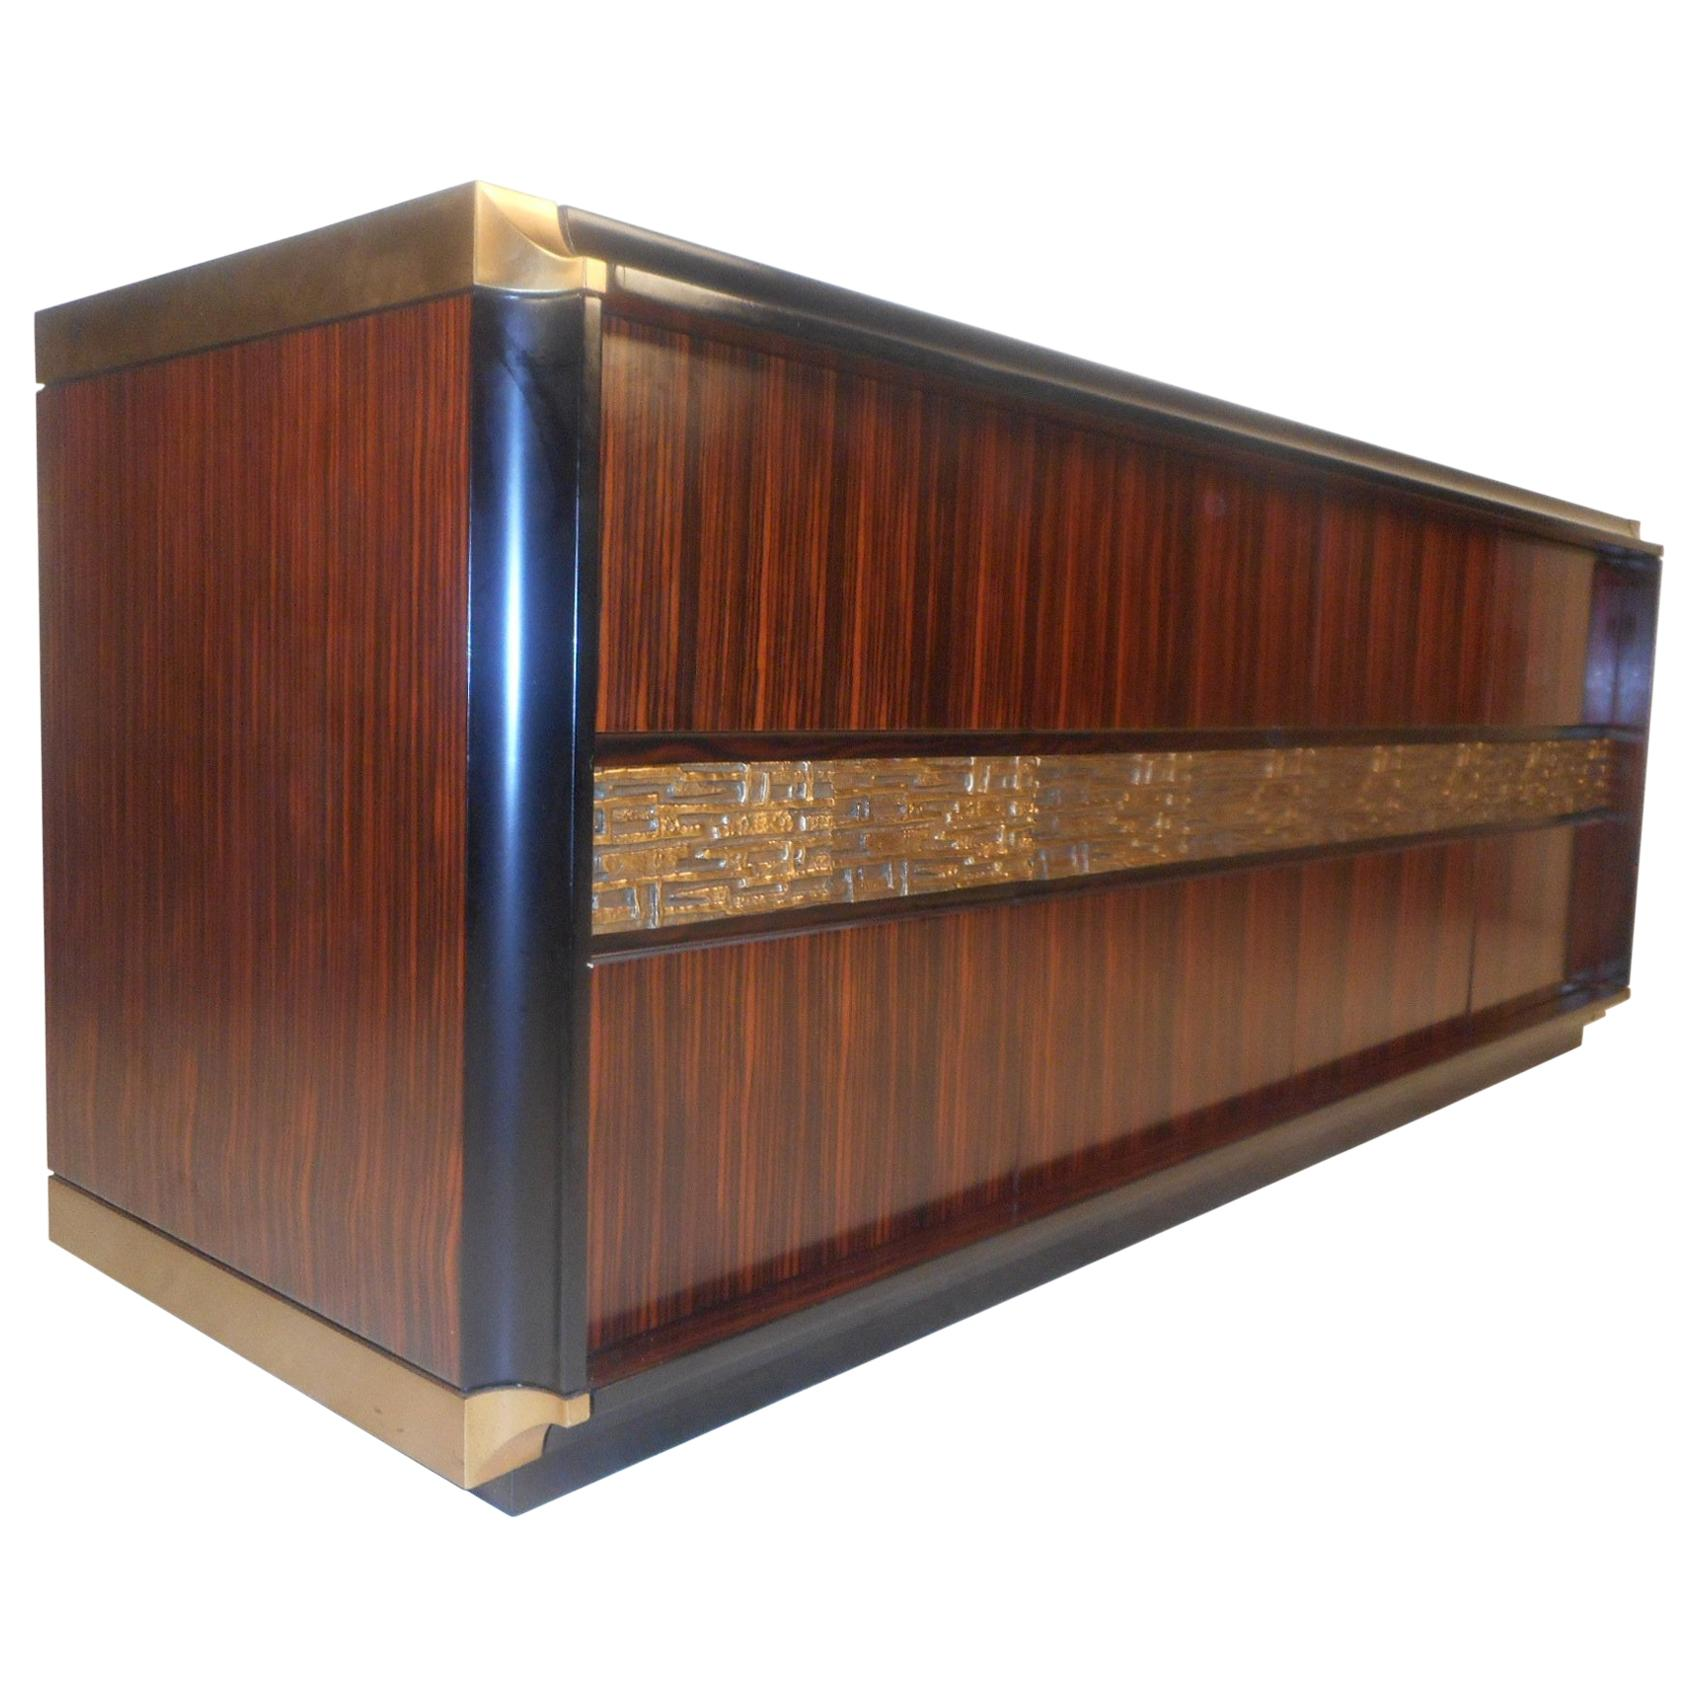 Stunning Midcentury Chic Sideboard by Frigerio